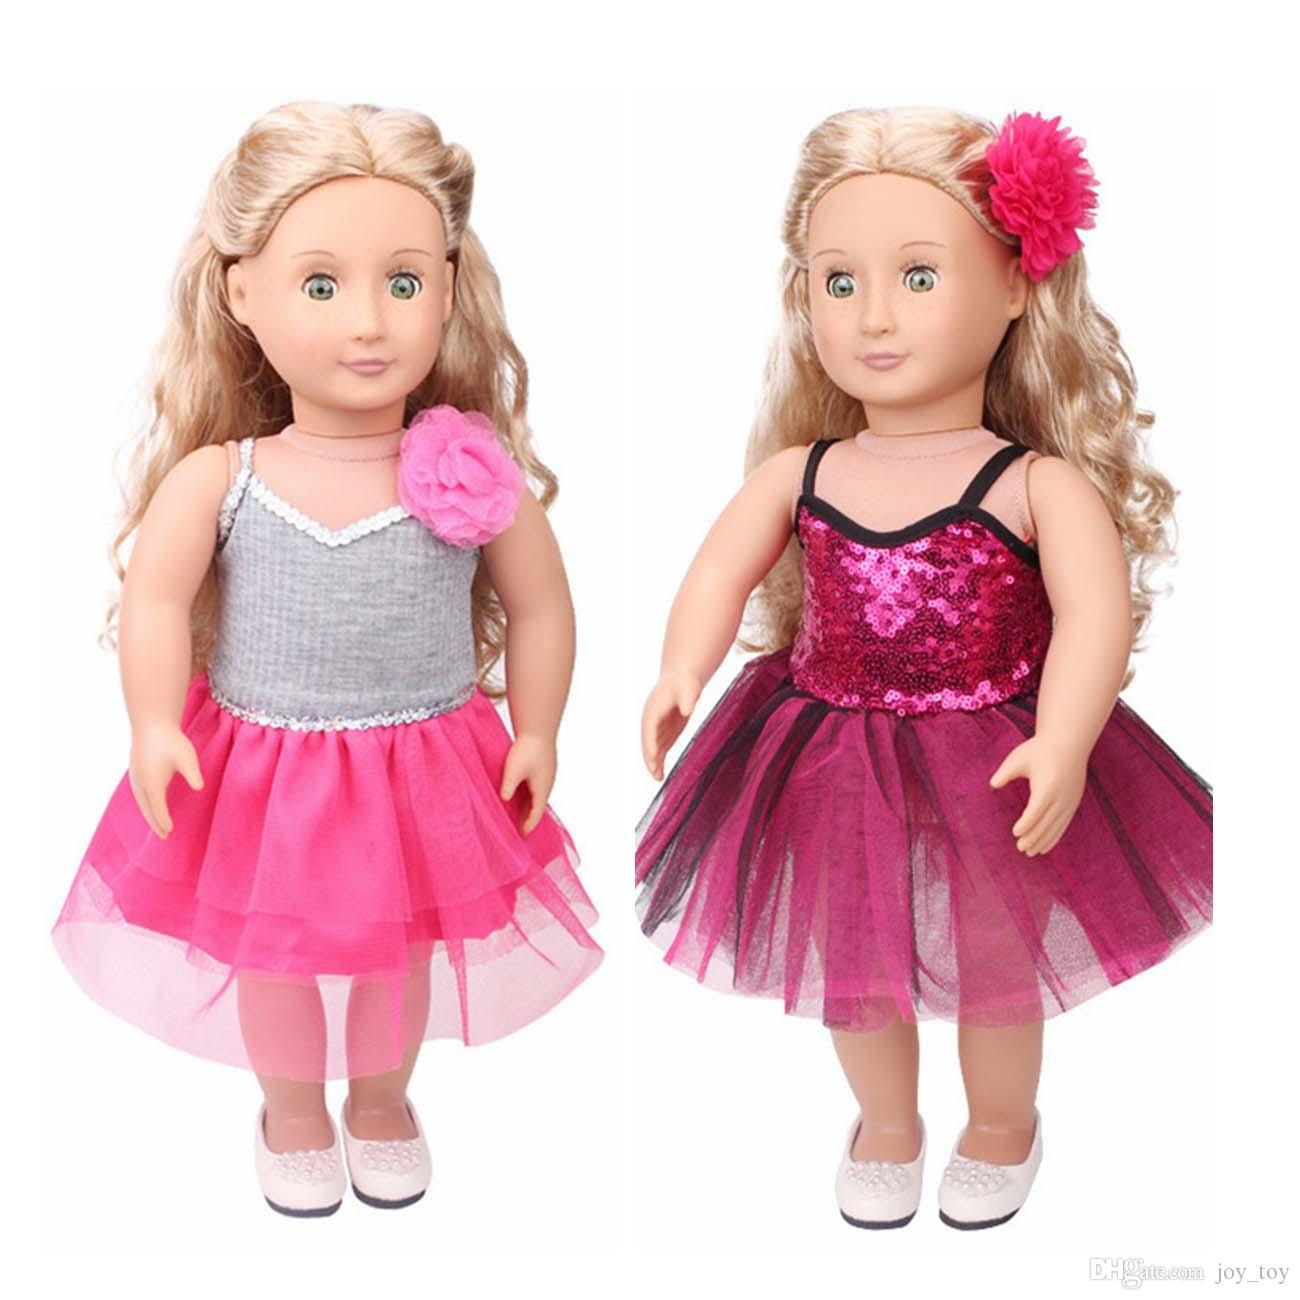 18 inch Doll Skirt One piece Dress Dance Ballet Party Cloth with Flower for American Girl Doll